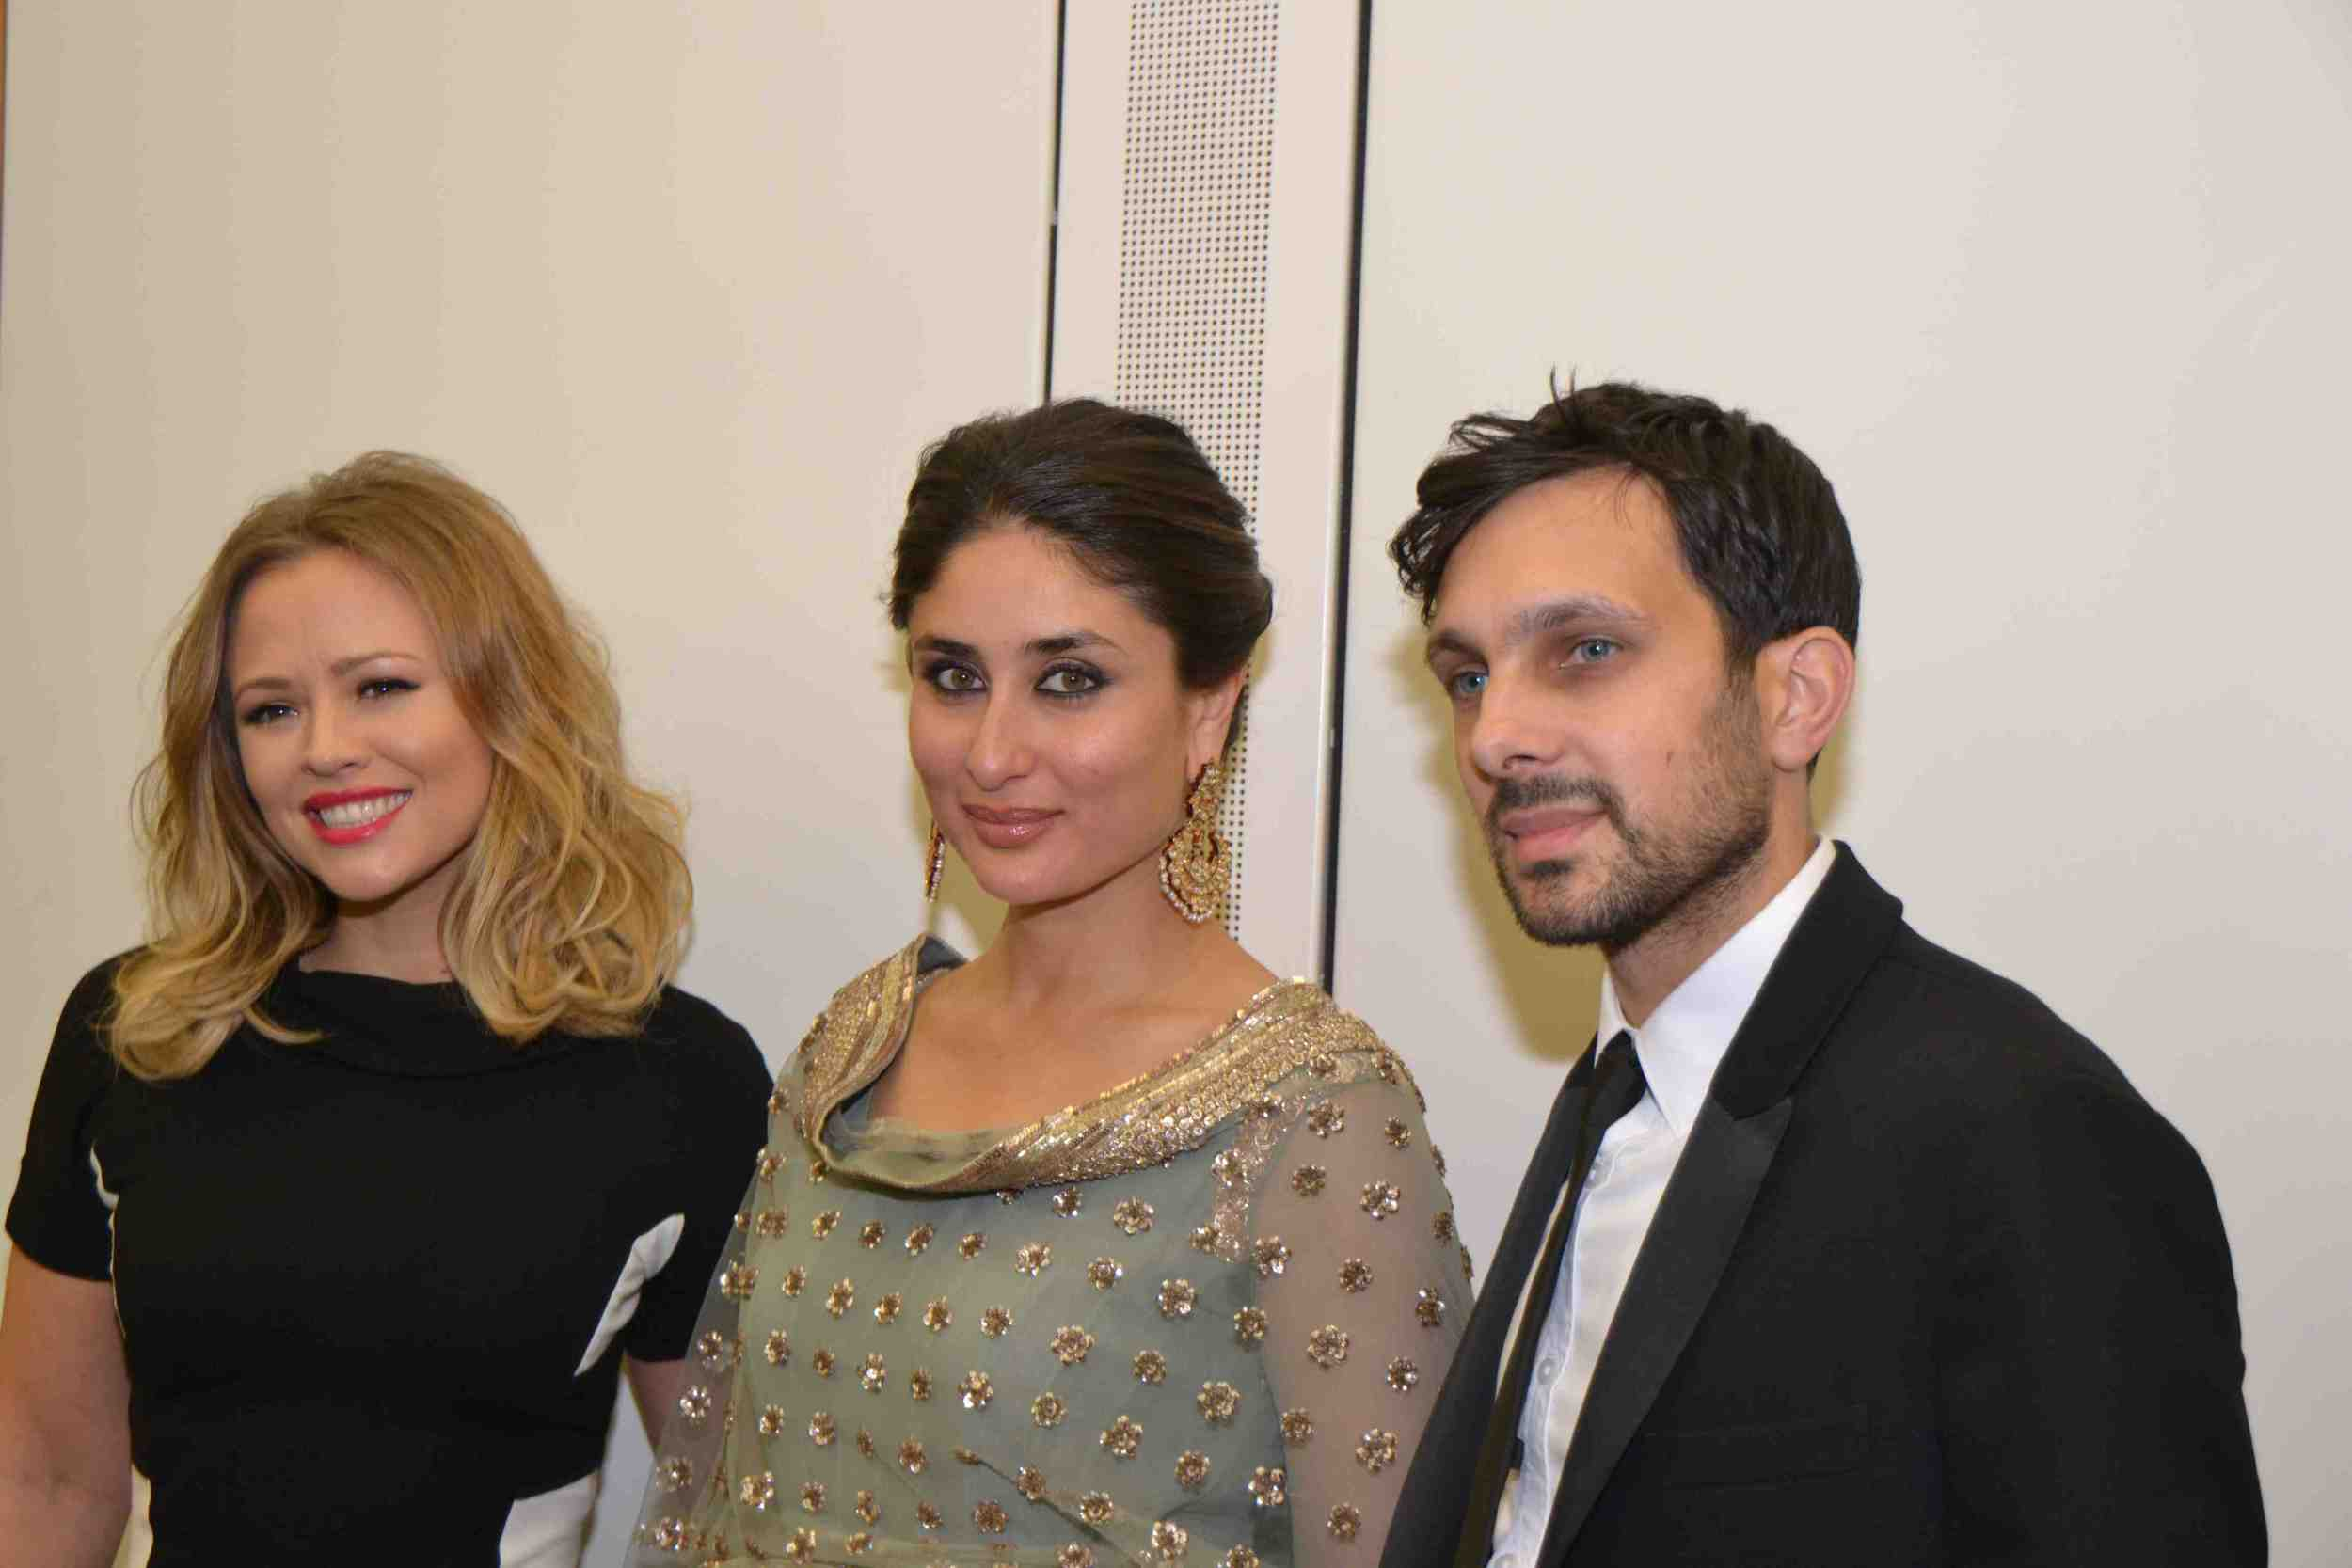 Kareena Kapoor Khan, Kimberley Walsh and Dynamo at the prestigious event